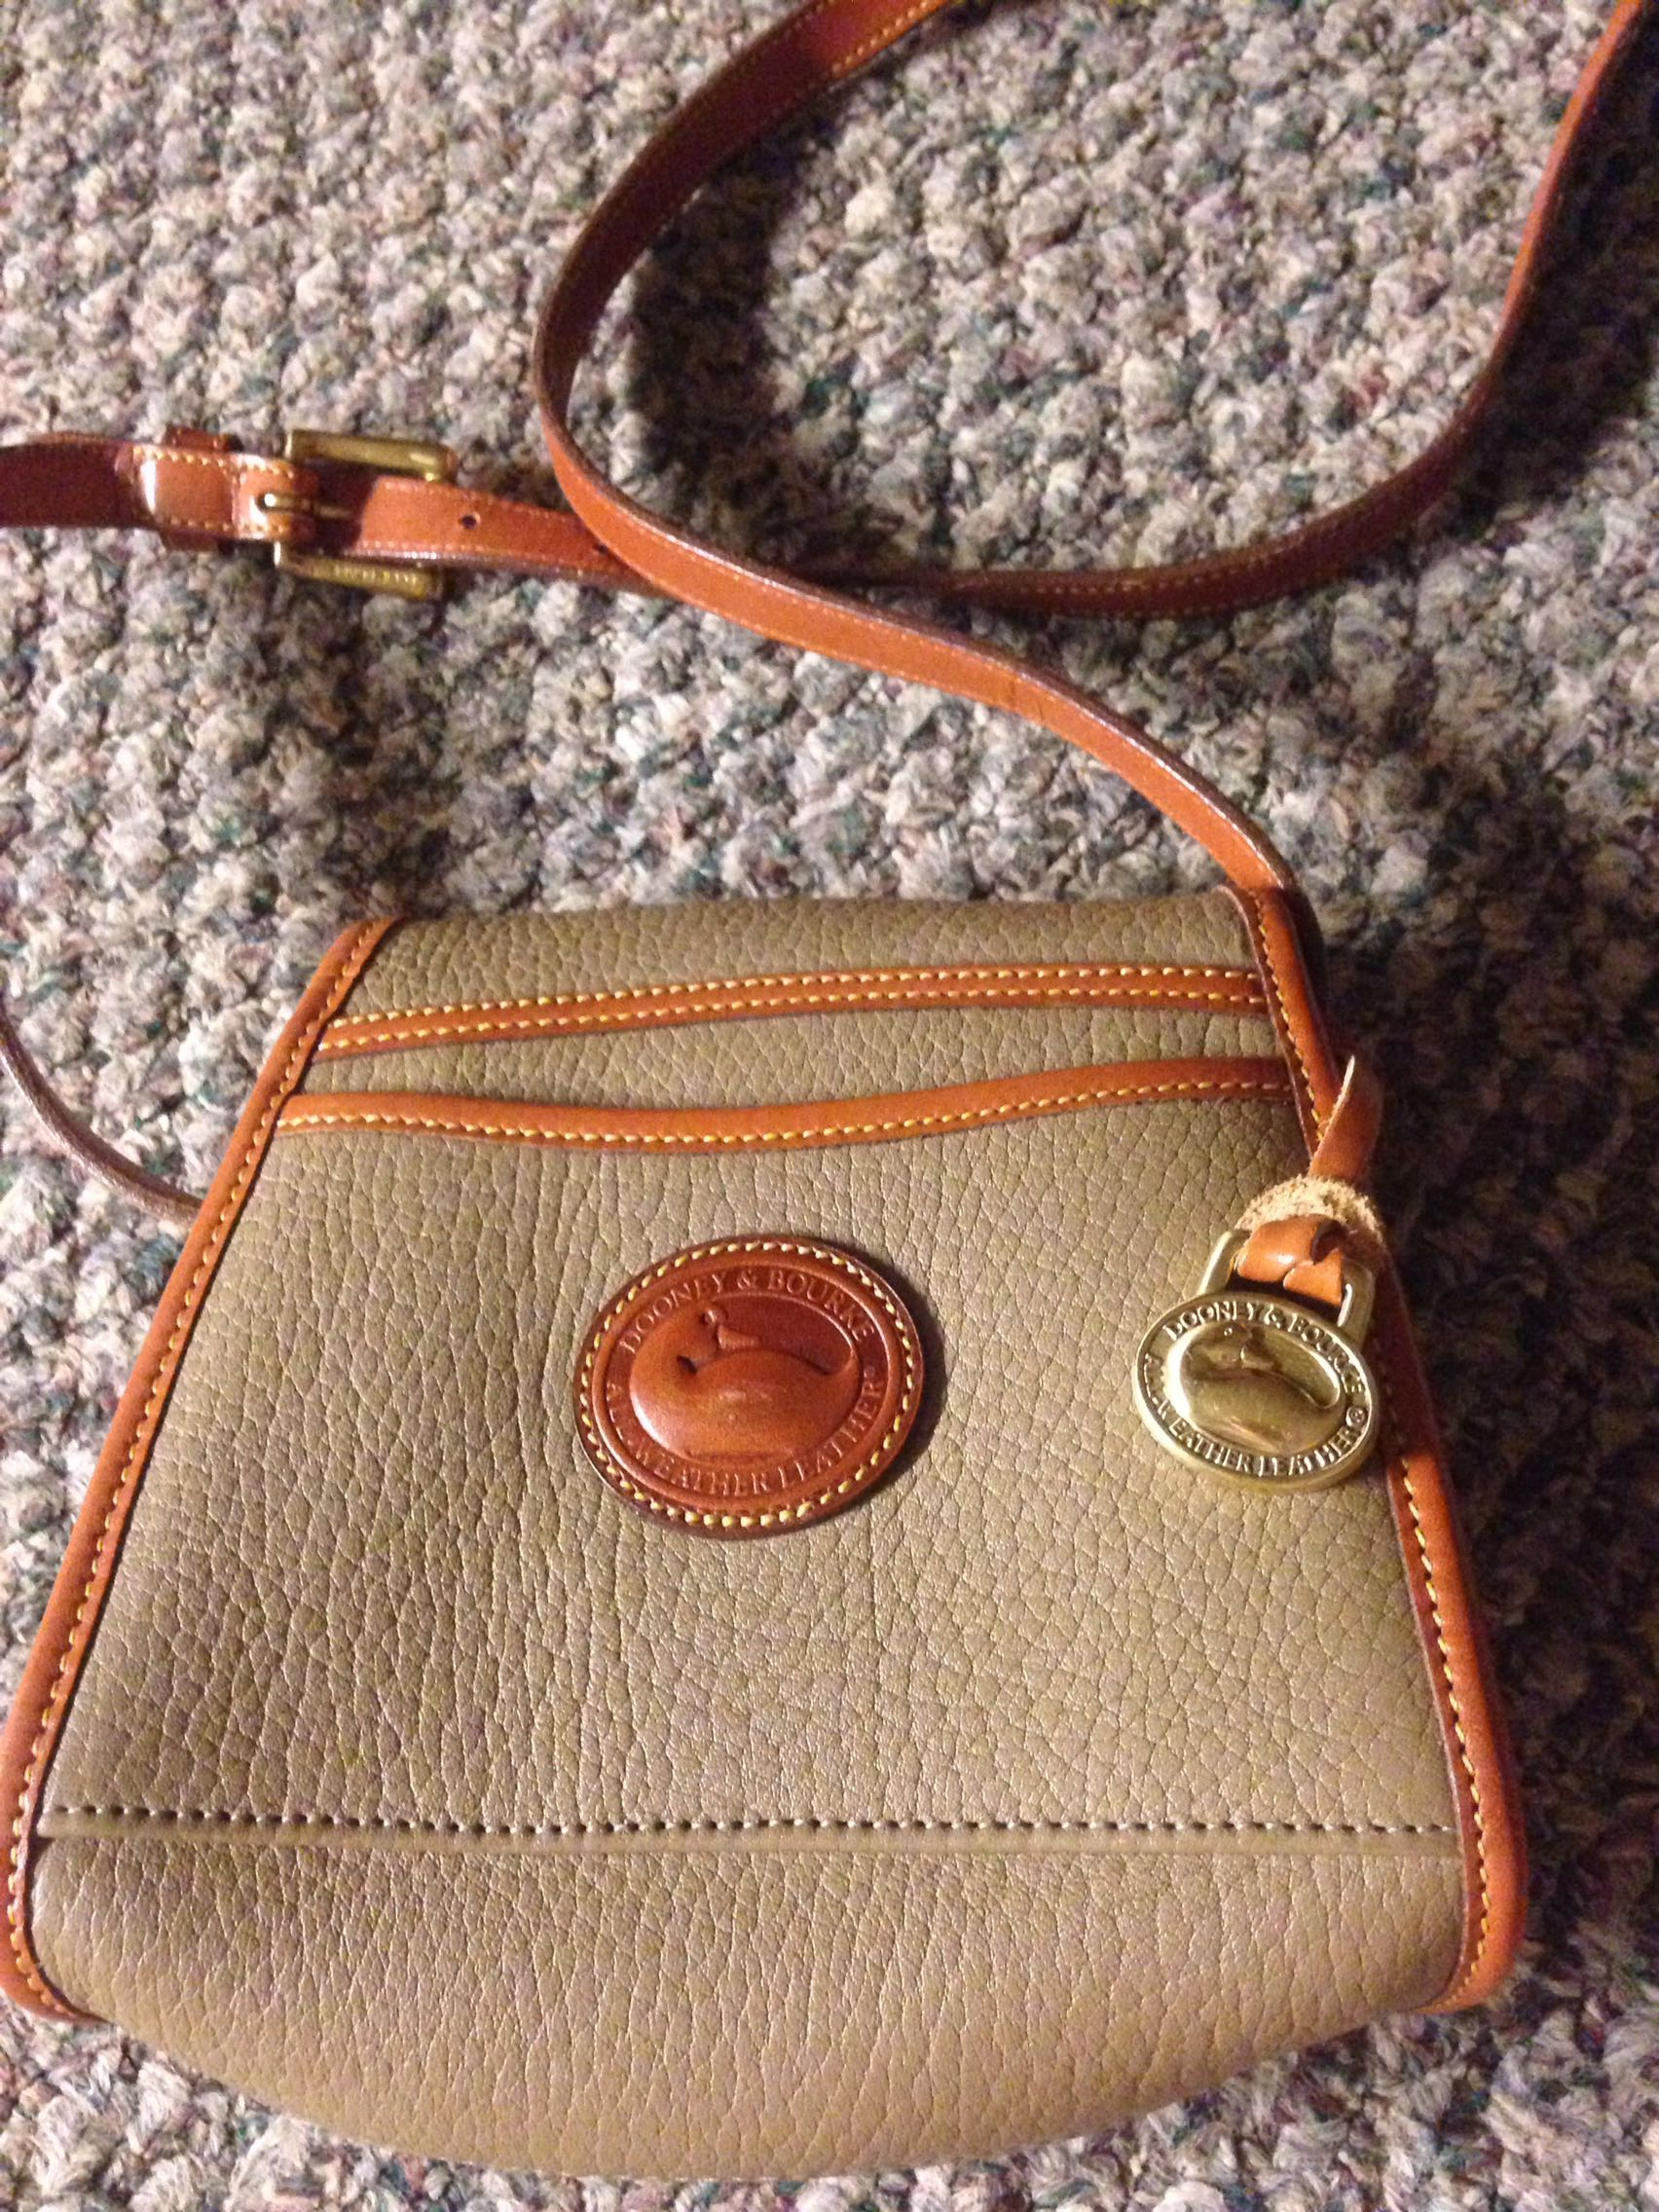 Small Dooney and Burke cross body bag/purse